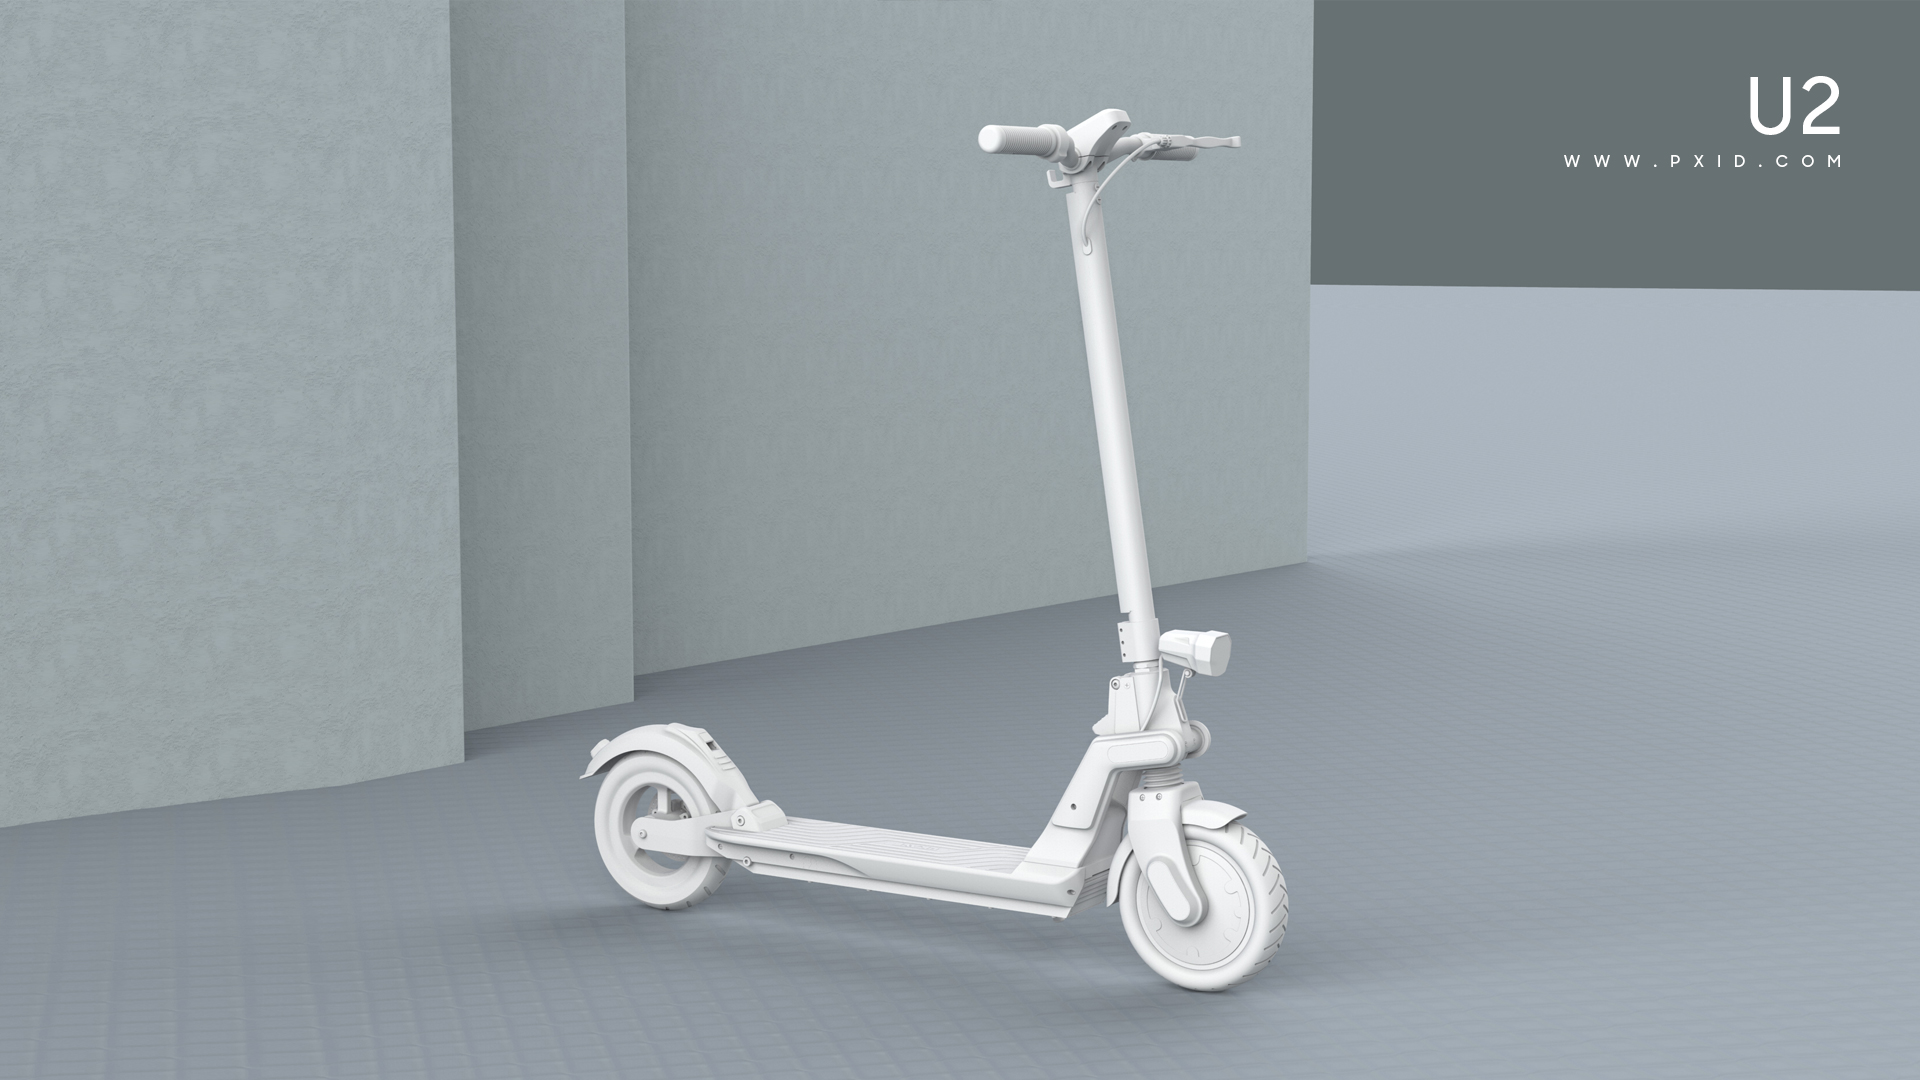 2020 Wholesale U2 e-scooter mobility electric scooter bike folding two wheels e scooter design